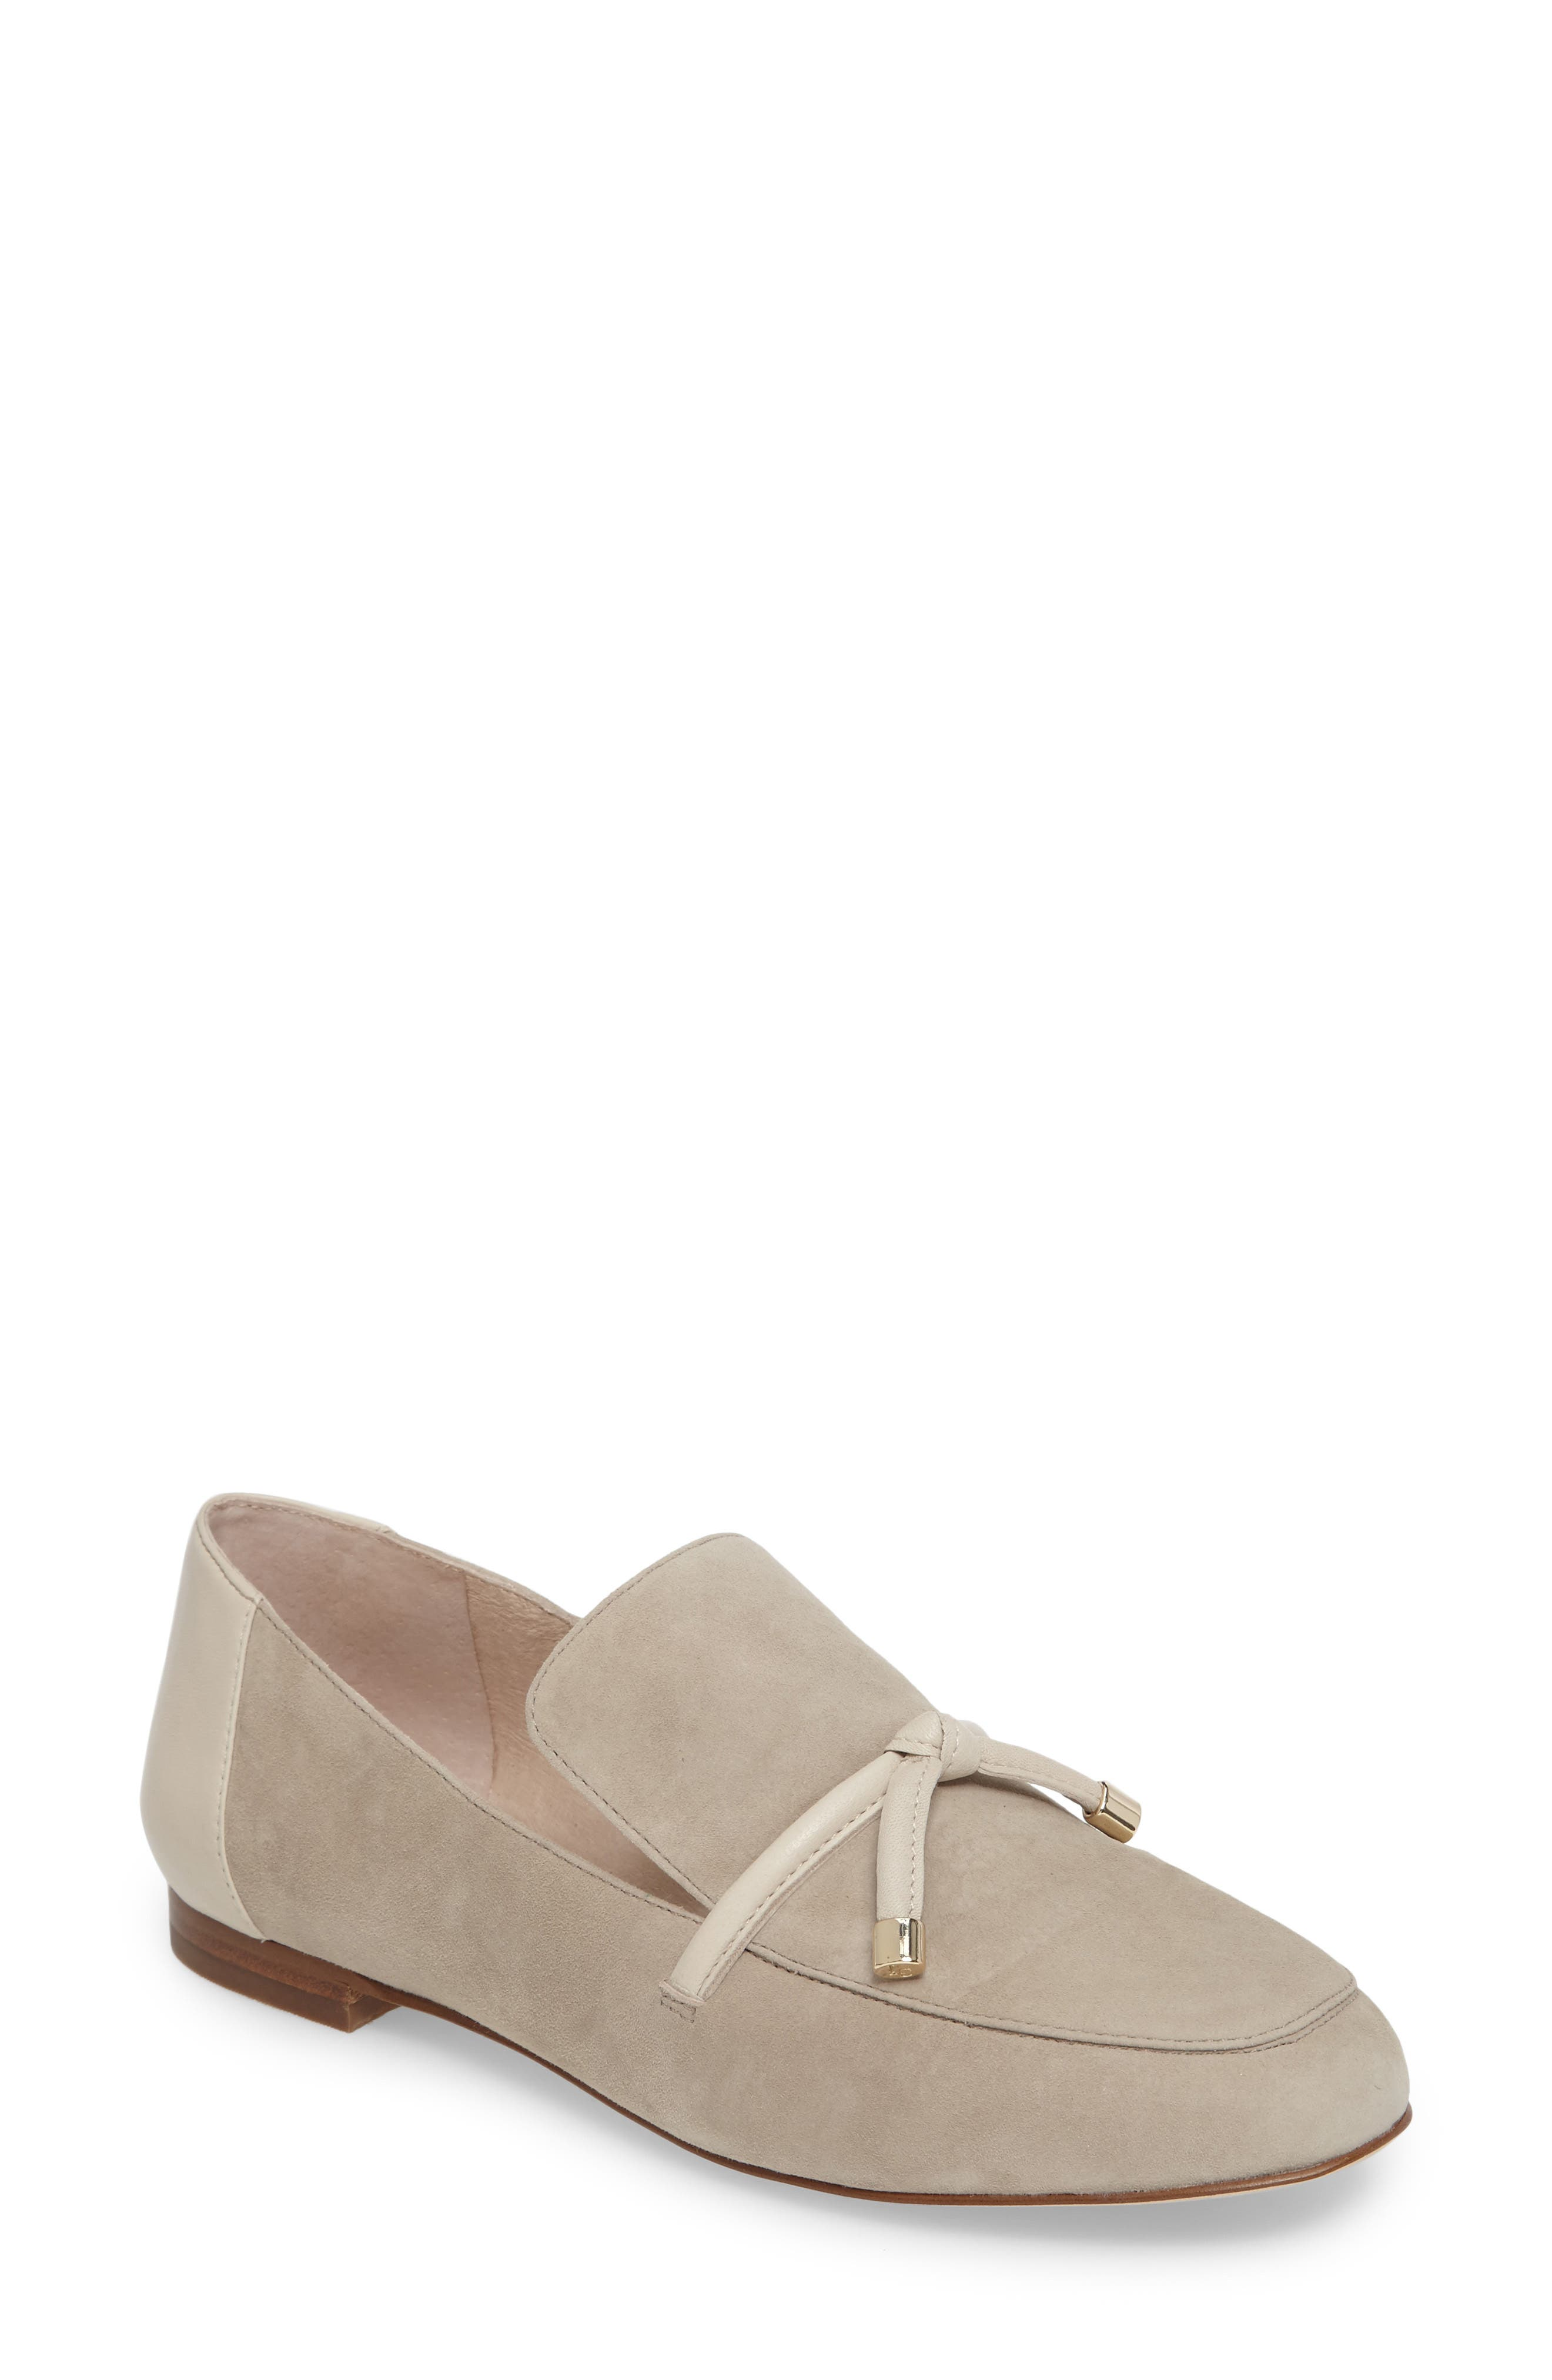 Faylen Loafer,                             Main thumbnail 1, color,                             Light Beige Suede